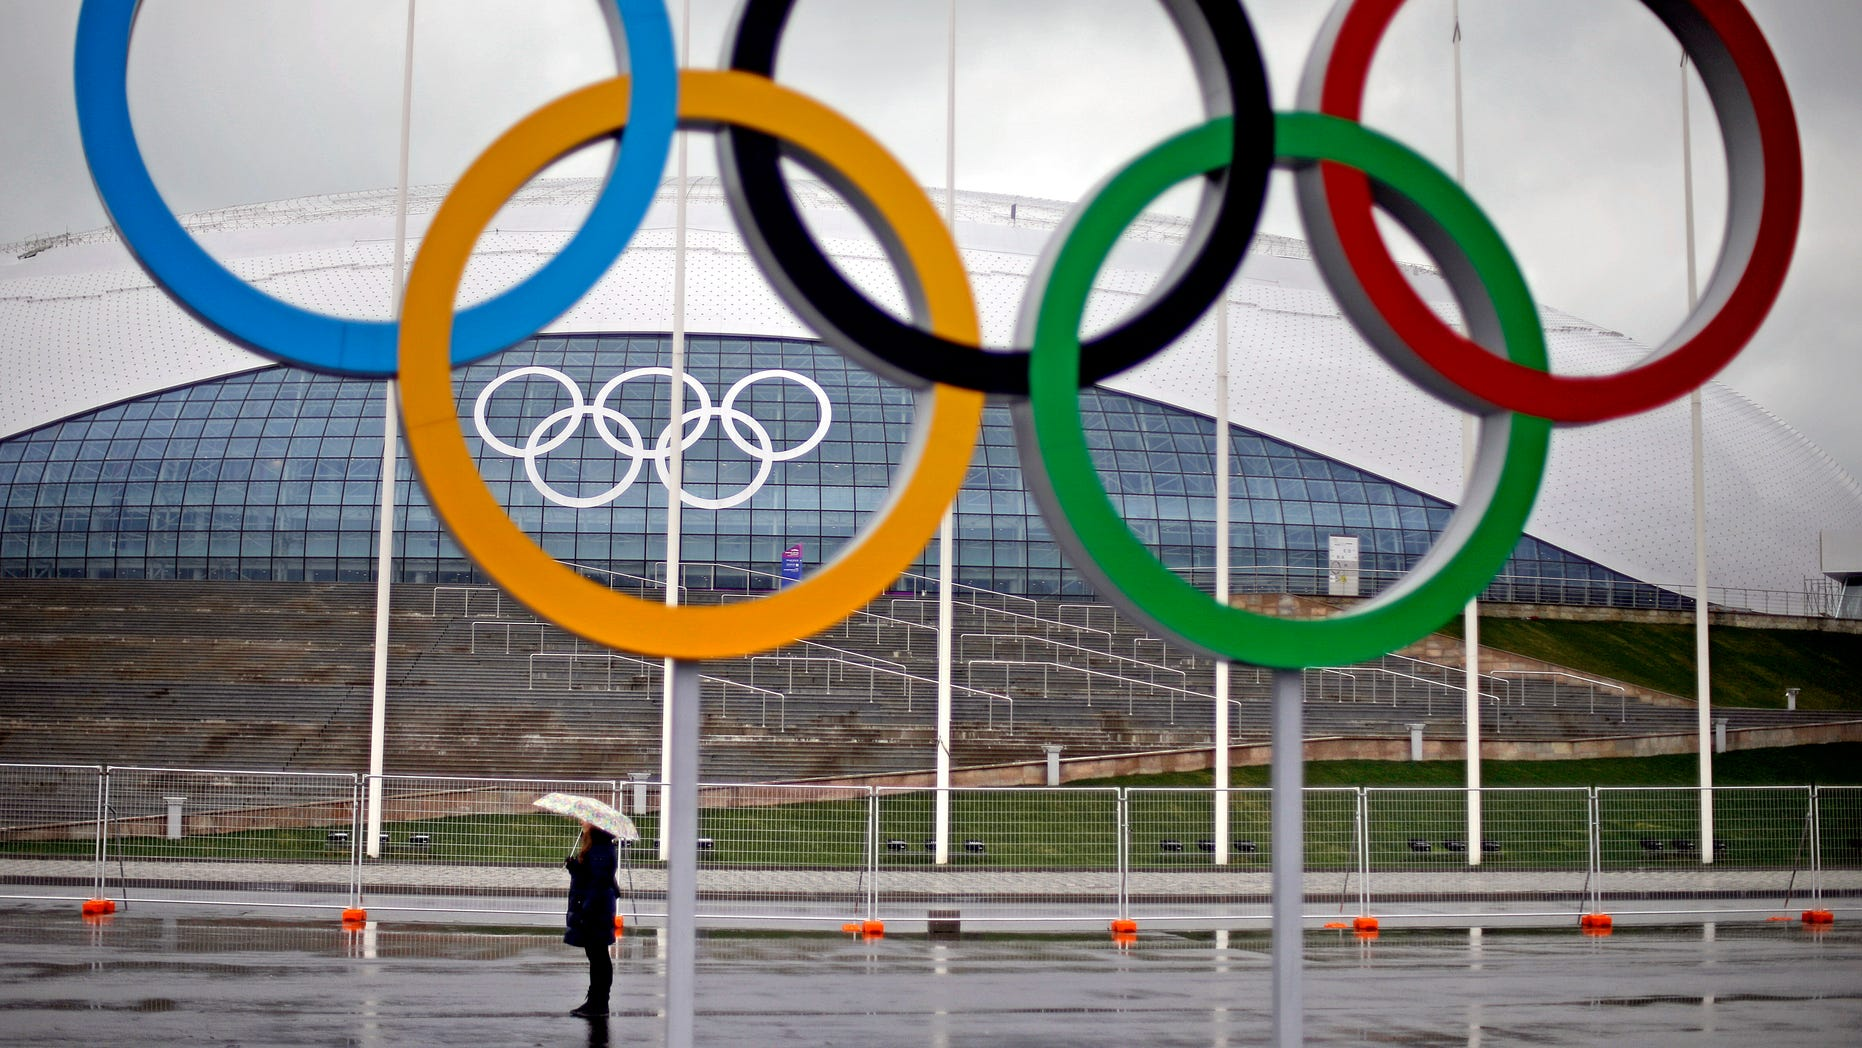 Jan. 31, 2014 - The Olympic rings are seen outside the Bolshoy Ice Dome, site of the ice hockey competitions at the 2014 Winter Olympics.